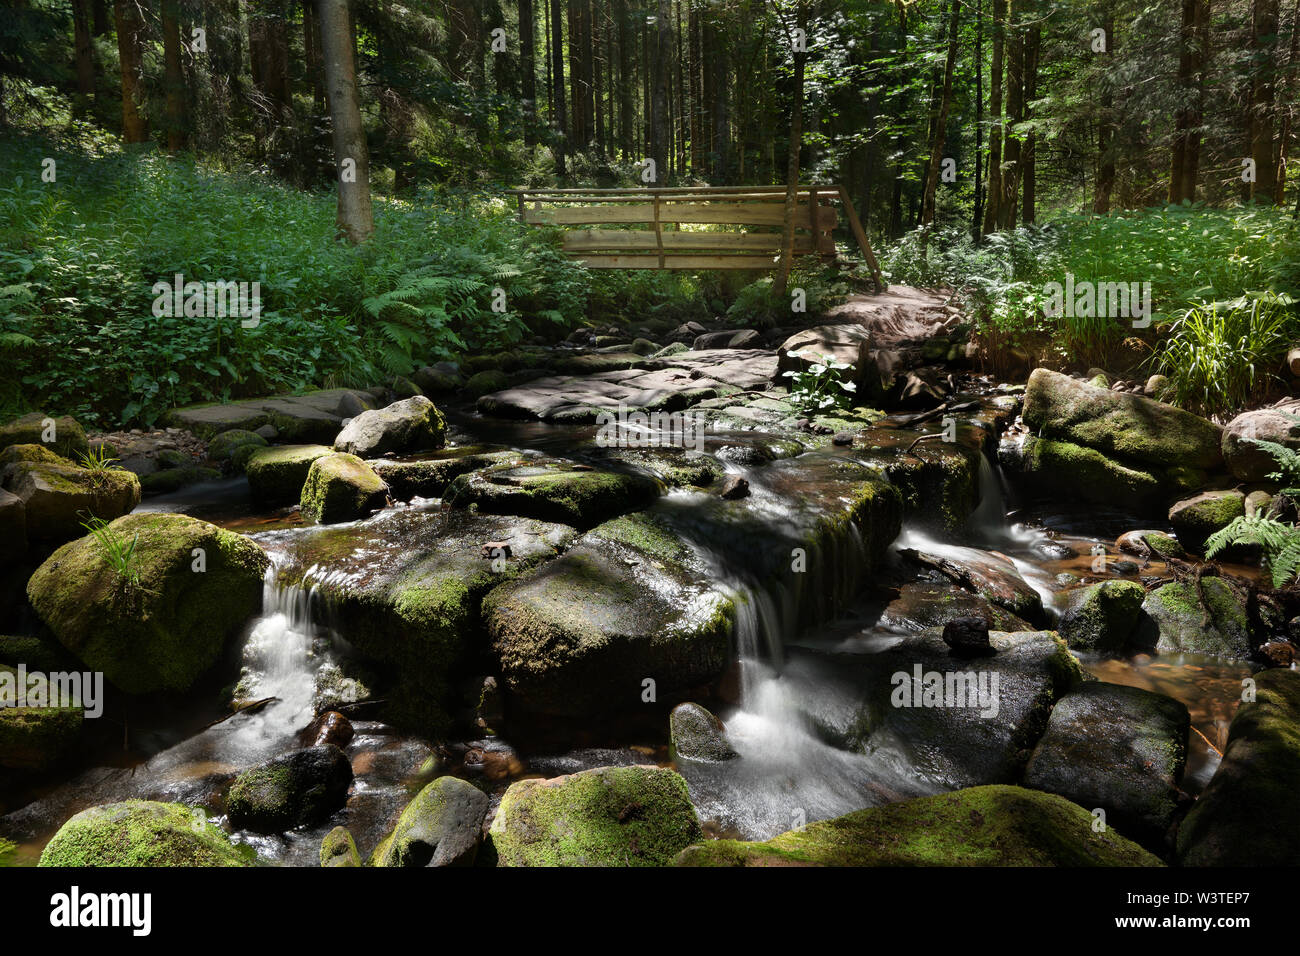 Stony creek bed in the forest with a small wooden bridge - Stock Image